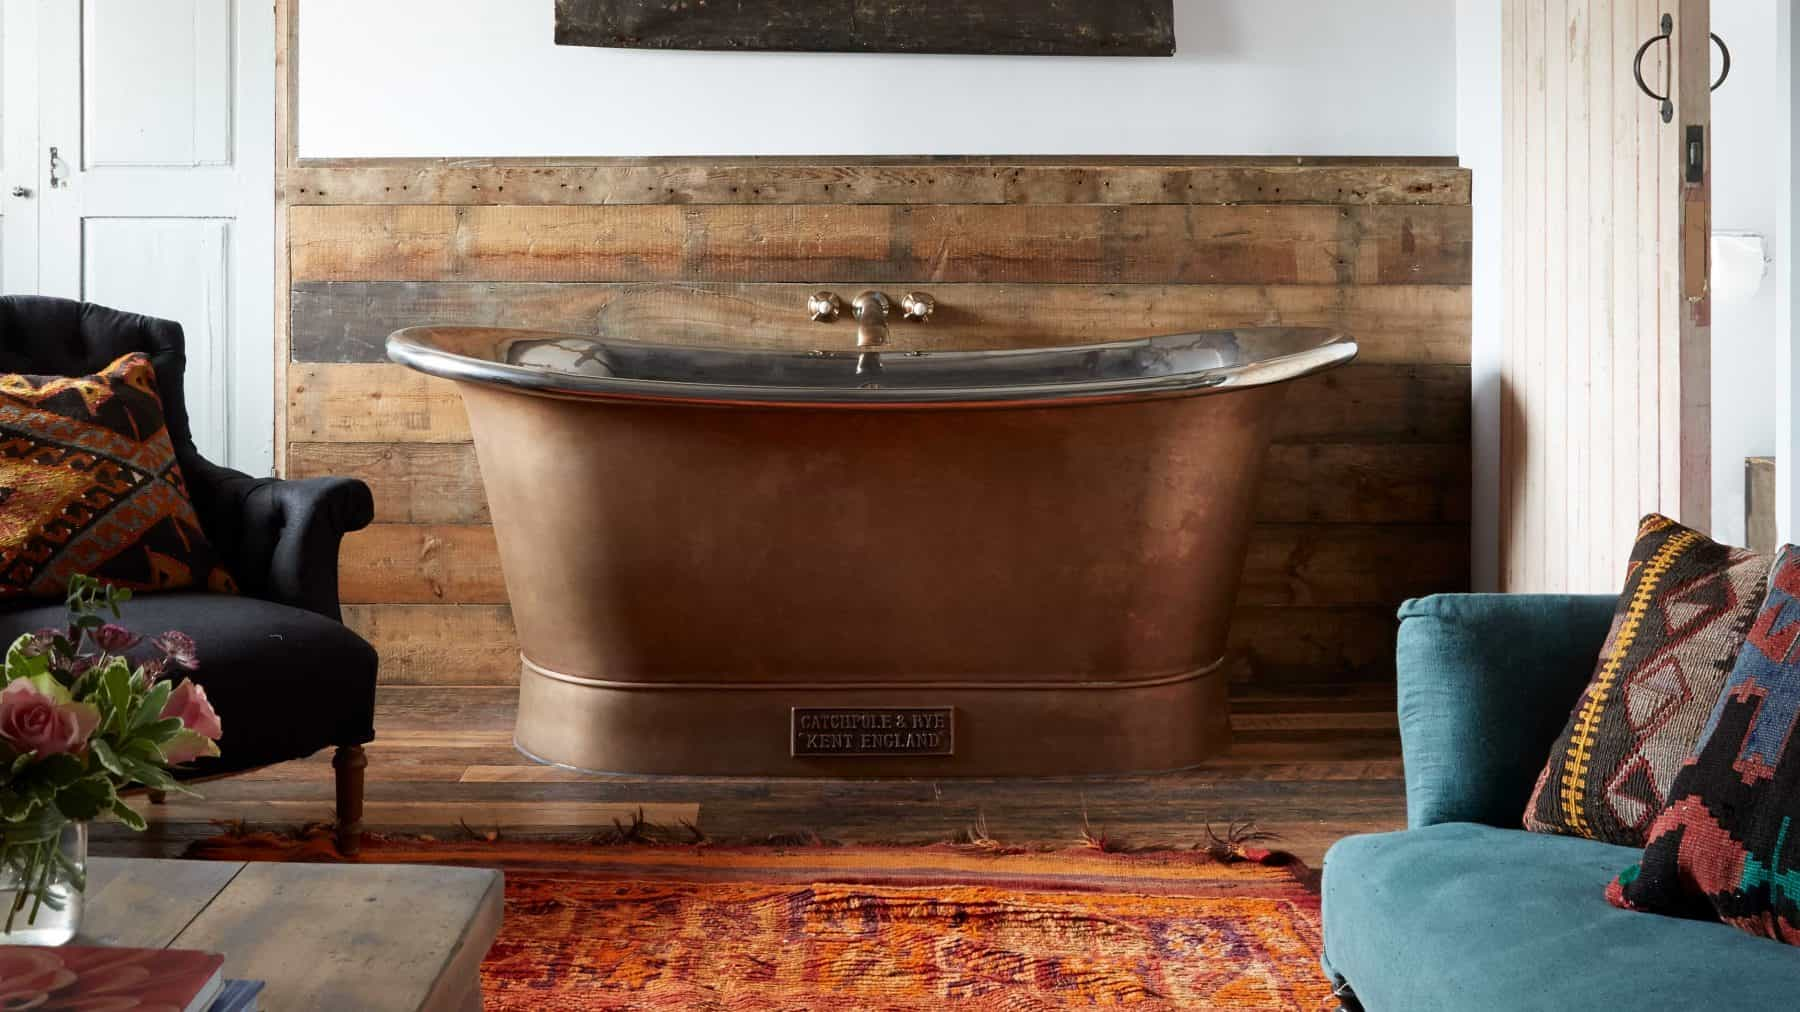 The Catchpole & Rye Copper Bateau with Weathered Exterior and Silver Nickel Interior.